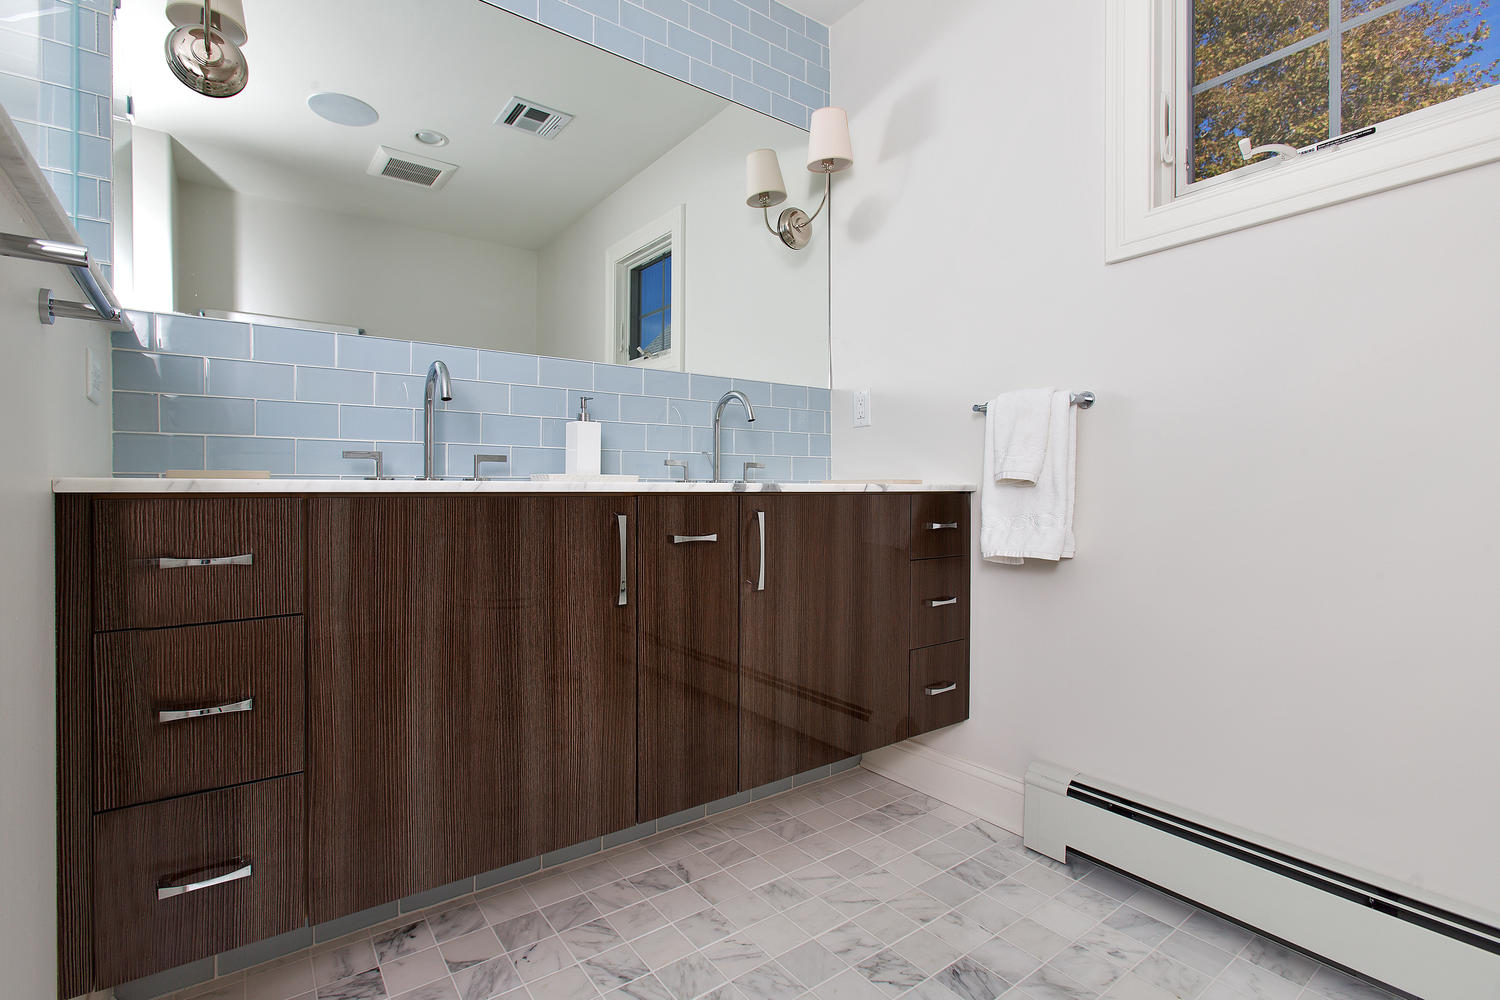 Custom Bathroom Double Vanities custom vanity / bathroom cabinetry | design line kitchens in sea